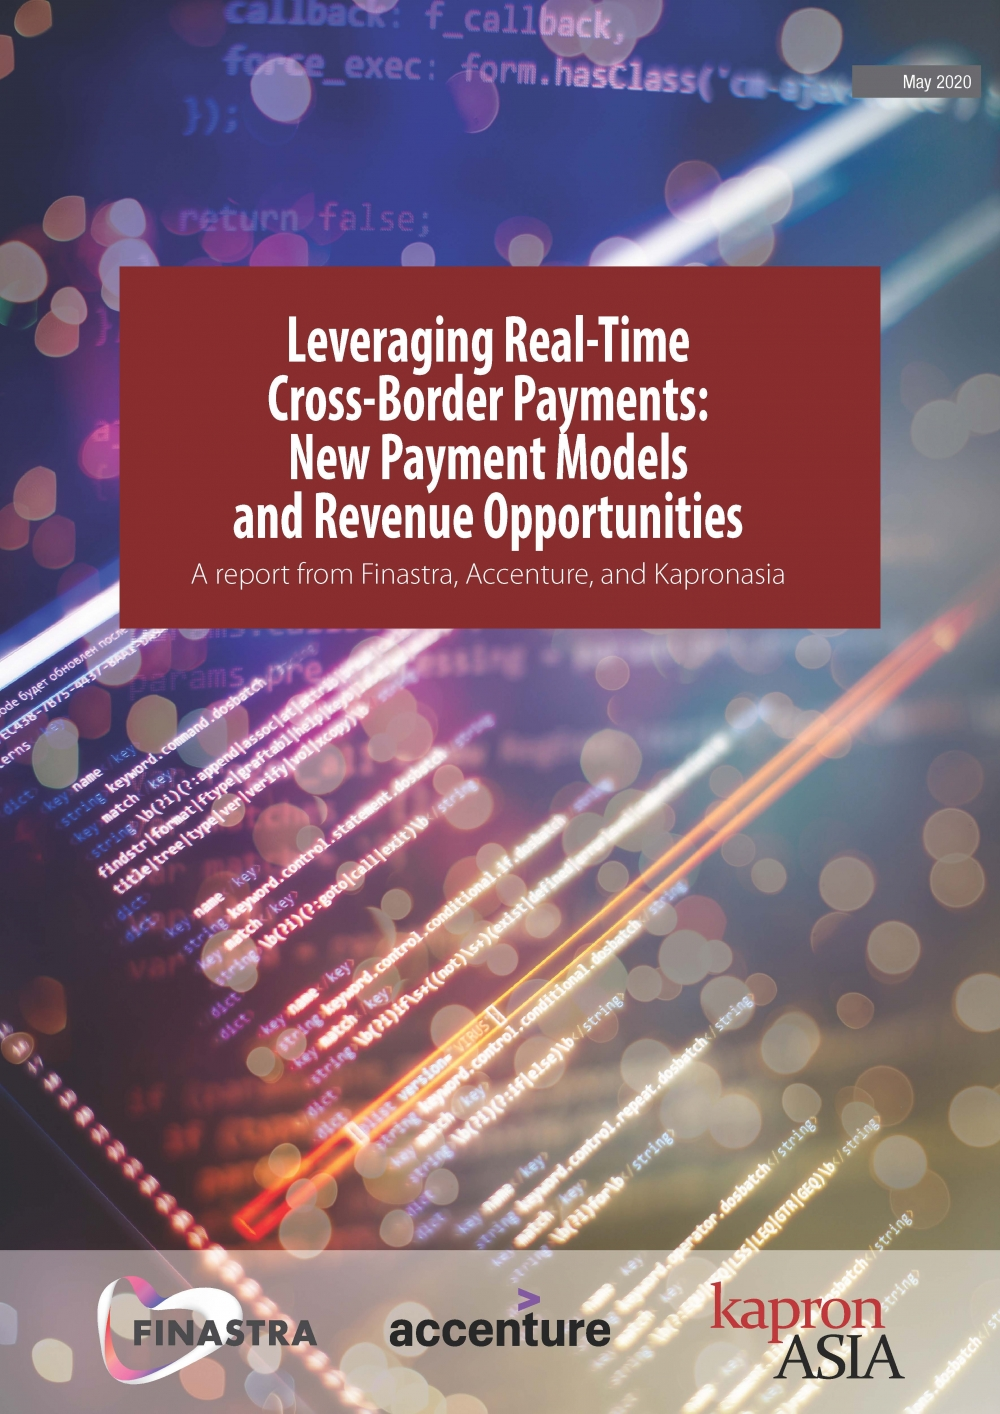 Leveraging Real-Time Cross-Border Payments: A report from Finastra, Accenture, and Kapronasia